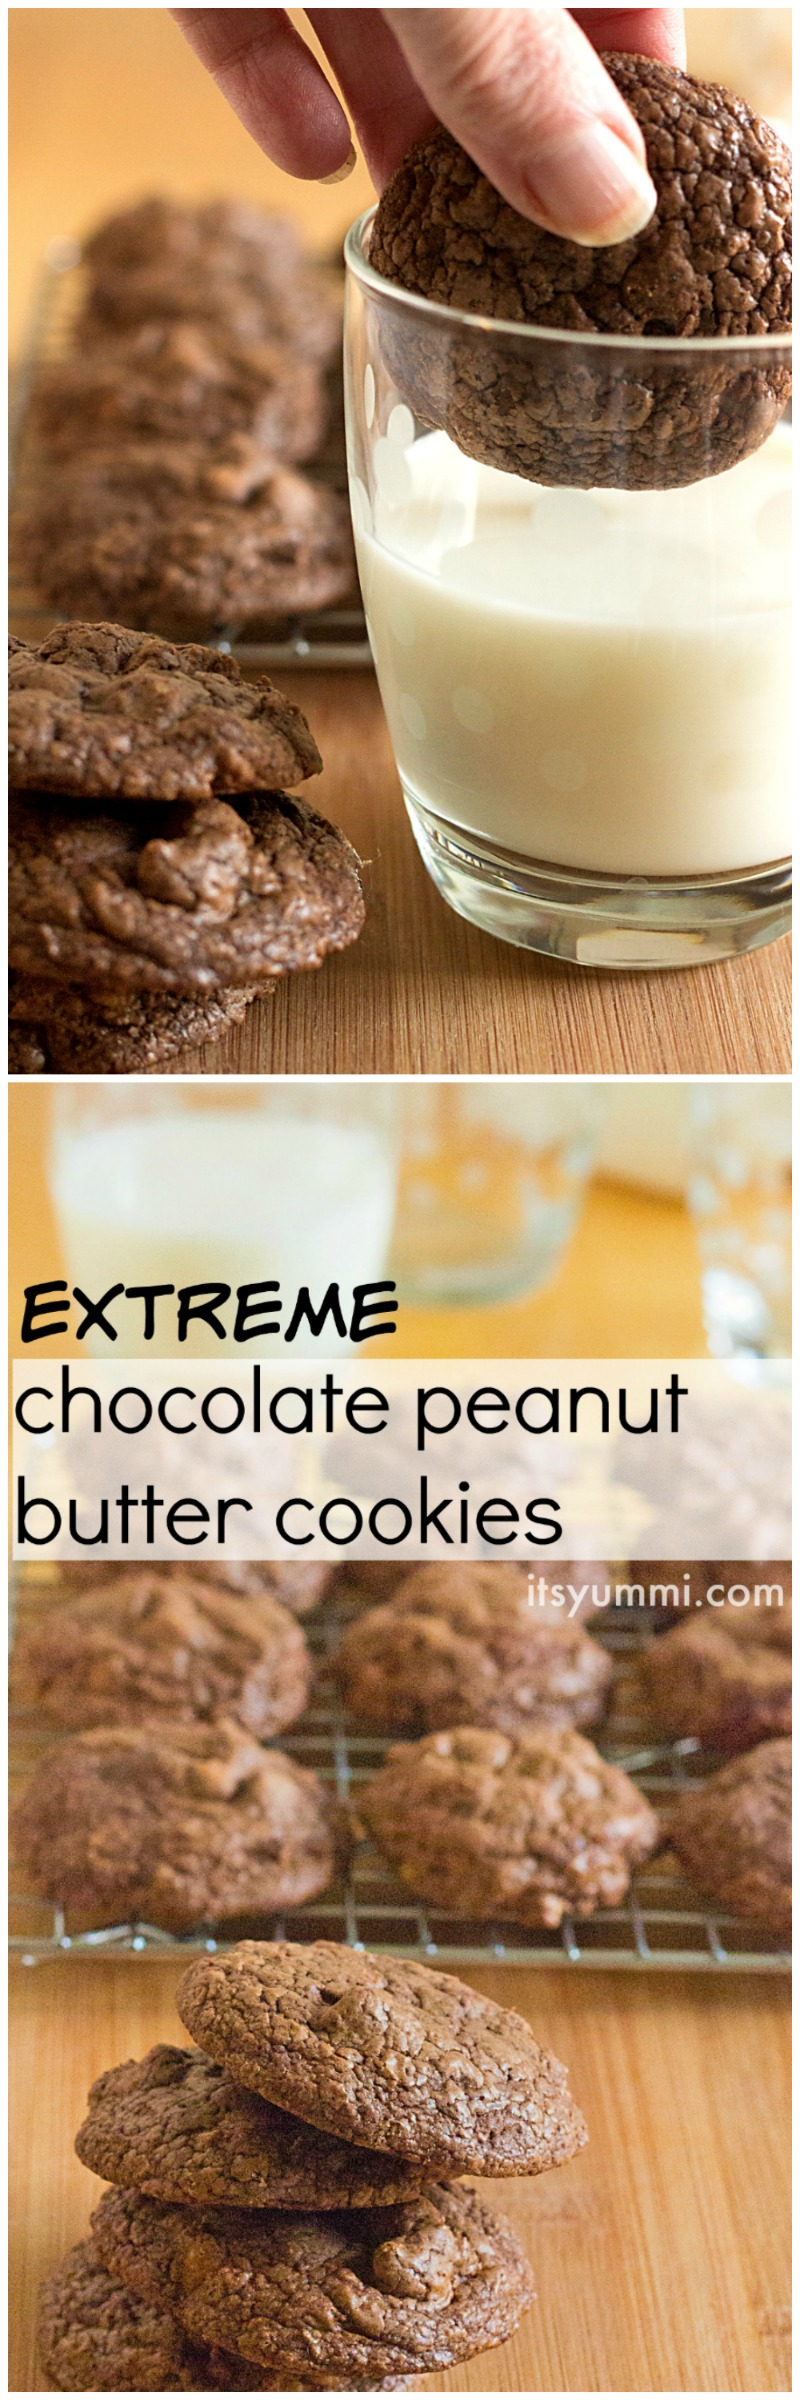 Extremely good cookie recipe